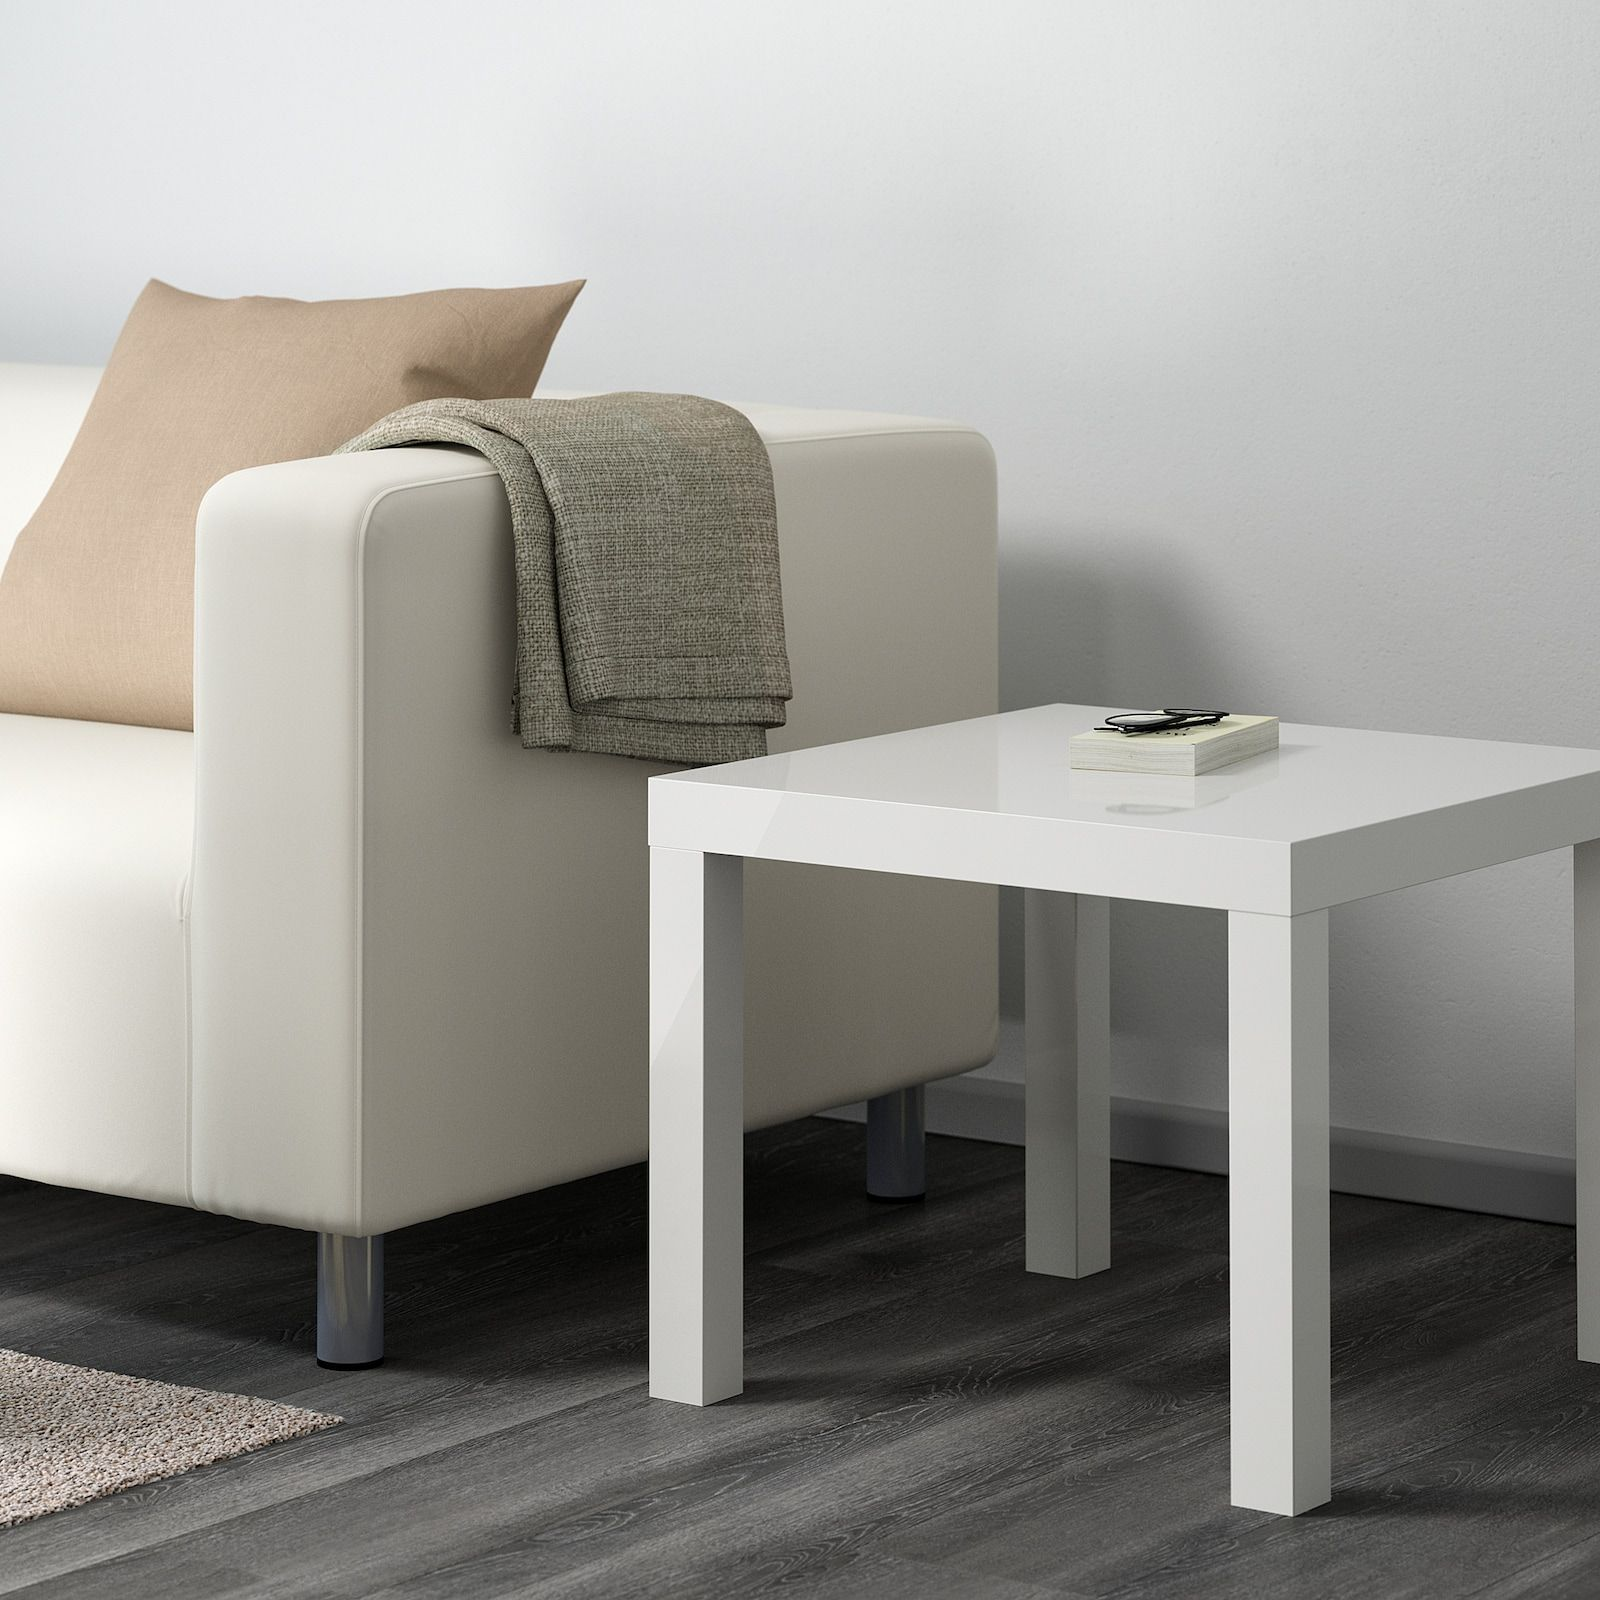 Lack Side Table High Gloss White 21 5 8x21 5 8 Ikea In 2020 Ikea Lack Side Table White Side Tables Black Side Table